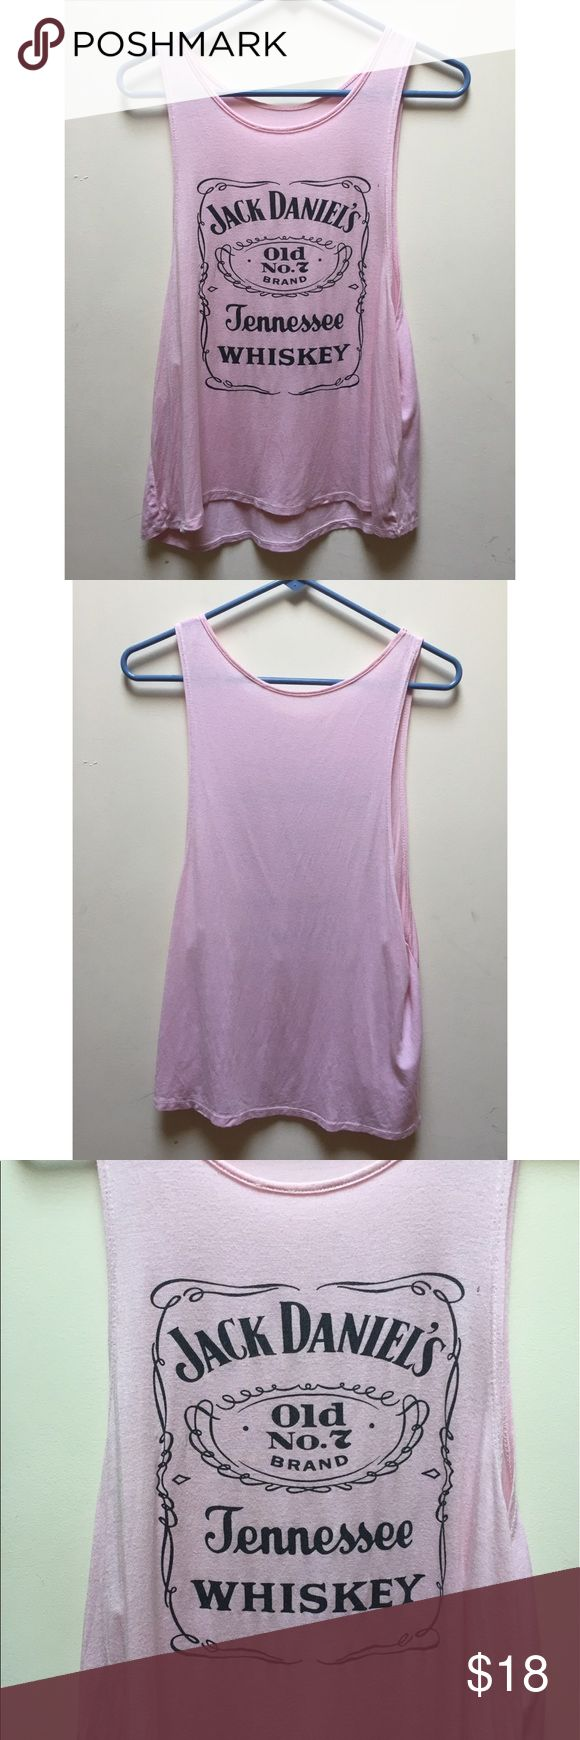 ☀️EUC Jack Daniels Tennessee Whiskey Pink Tank Top Jack Daniels Women's Tennessee Whiskey Number 7 (No.7) in Bubblegum/Blush Pink Tank Top, in excellent used condition, one size fits all Tops Tank Tops